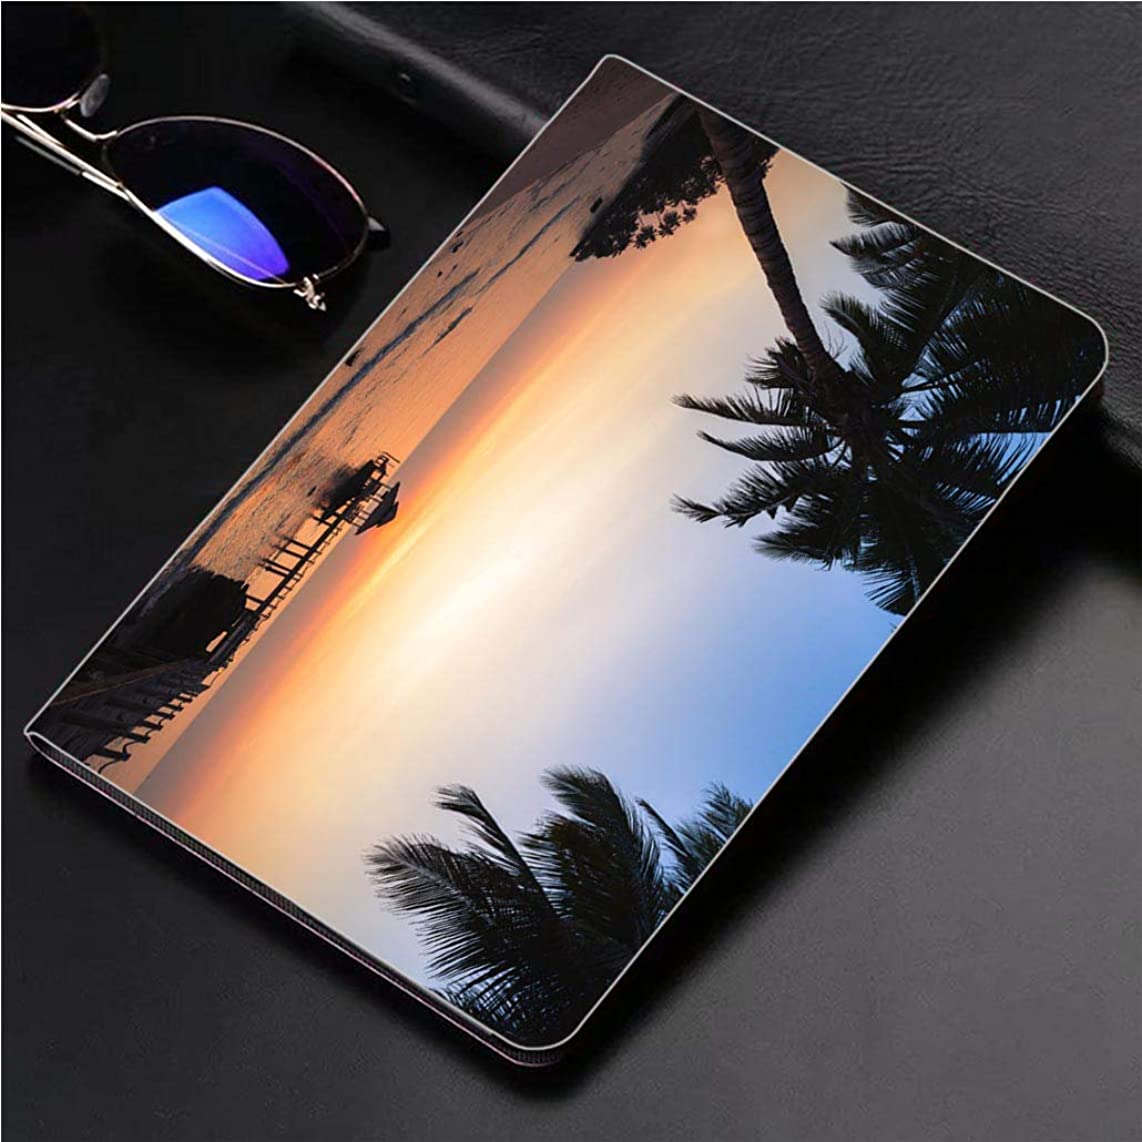 Compatible with 3D Printed iPad Pro 10.5 Case Beautiful Sunset on The Beach 360 Degree Swivel Mount Cover for Automatic Sleep Wake up ipad case